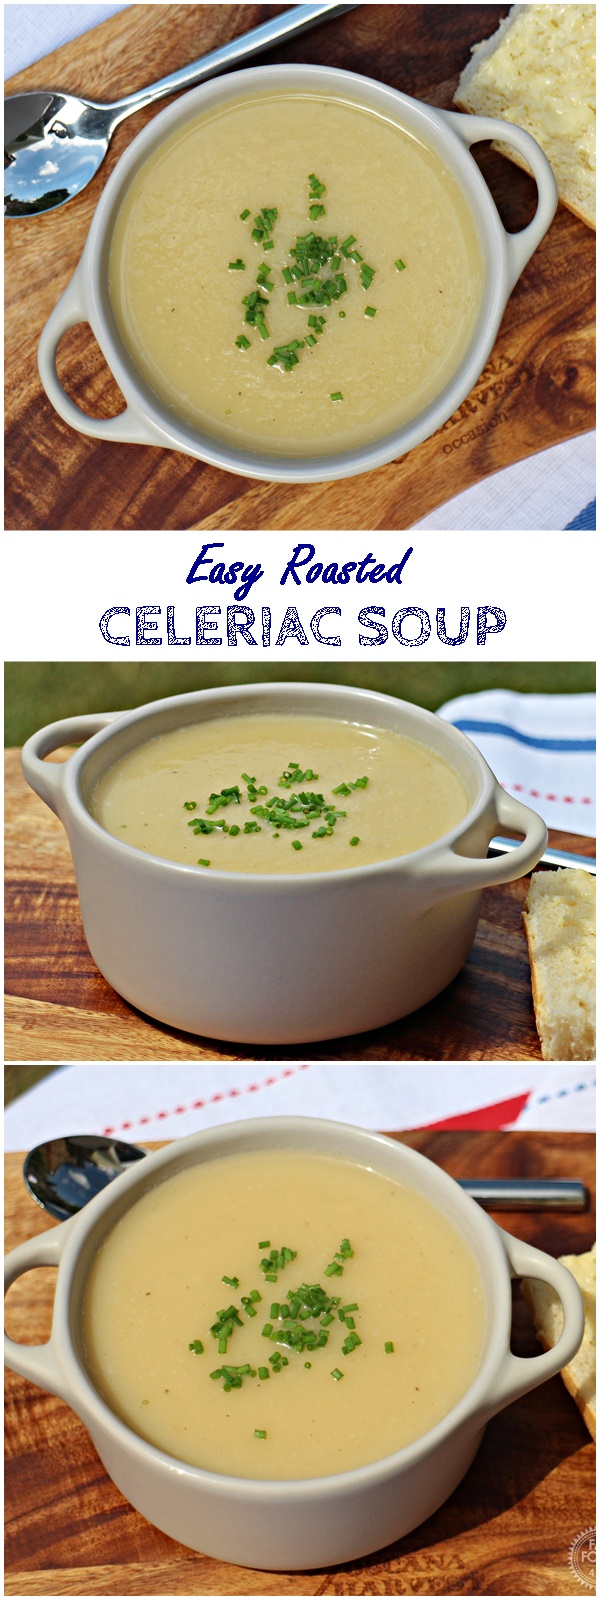 Easy Roasted Celeriac Soup Pinterest image